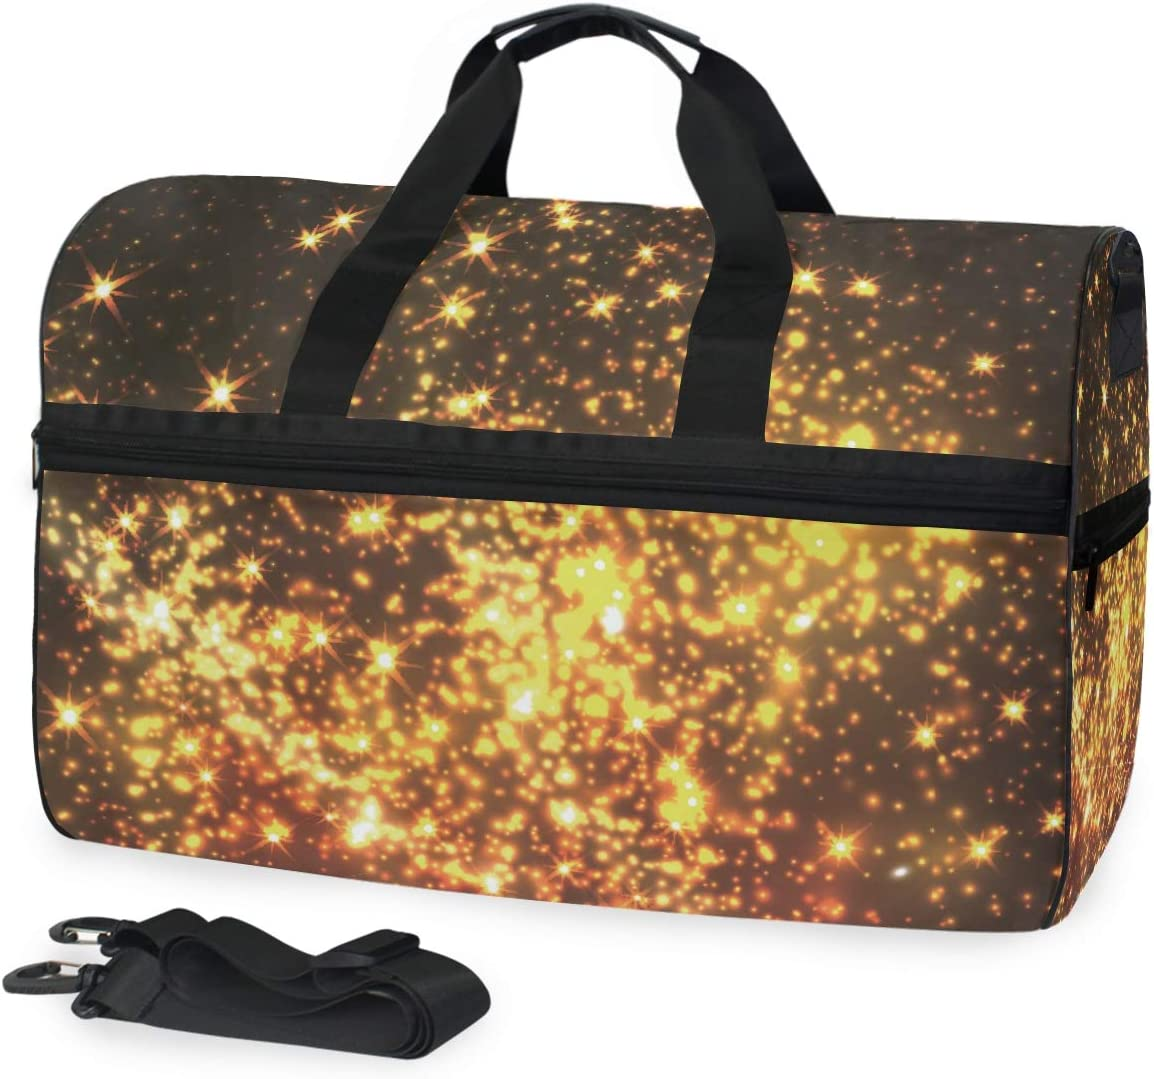 AHOMY Golden Stars Sports Gym Bag with Shoes Compartment Travel Duffel Bag